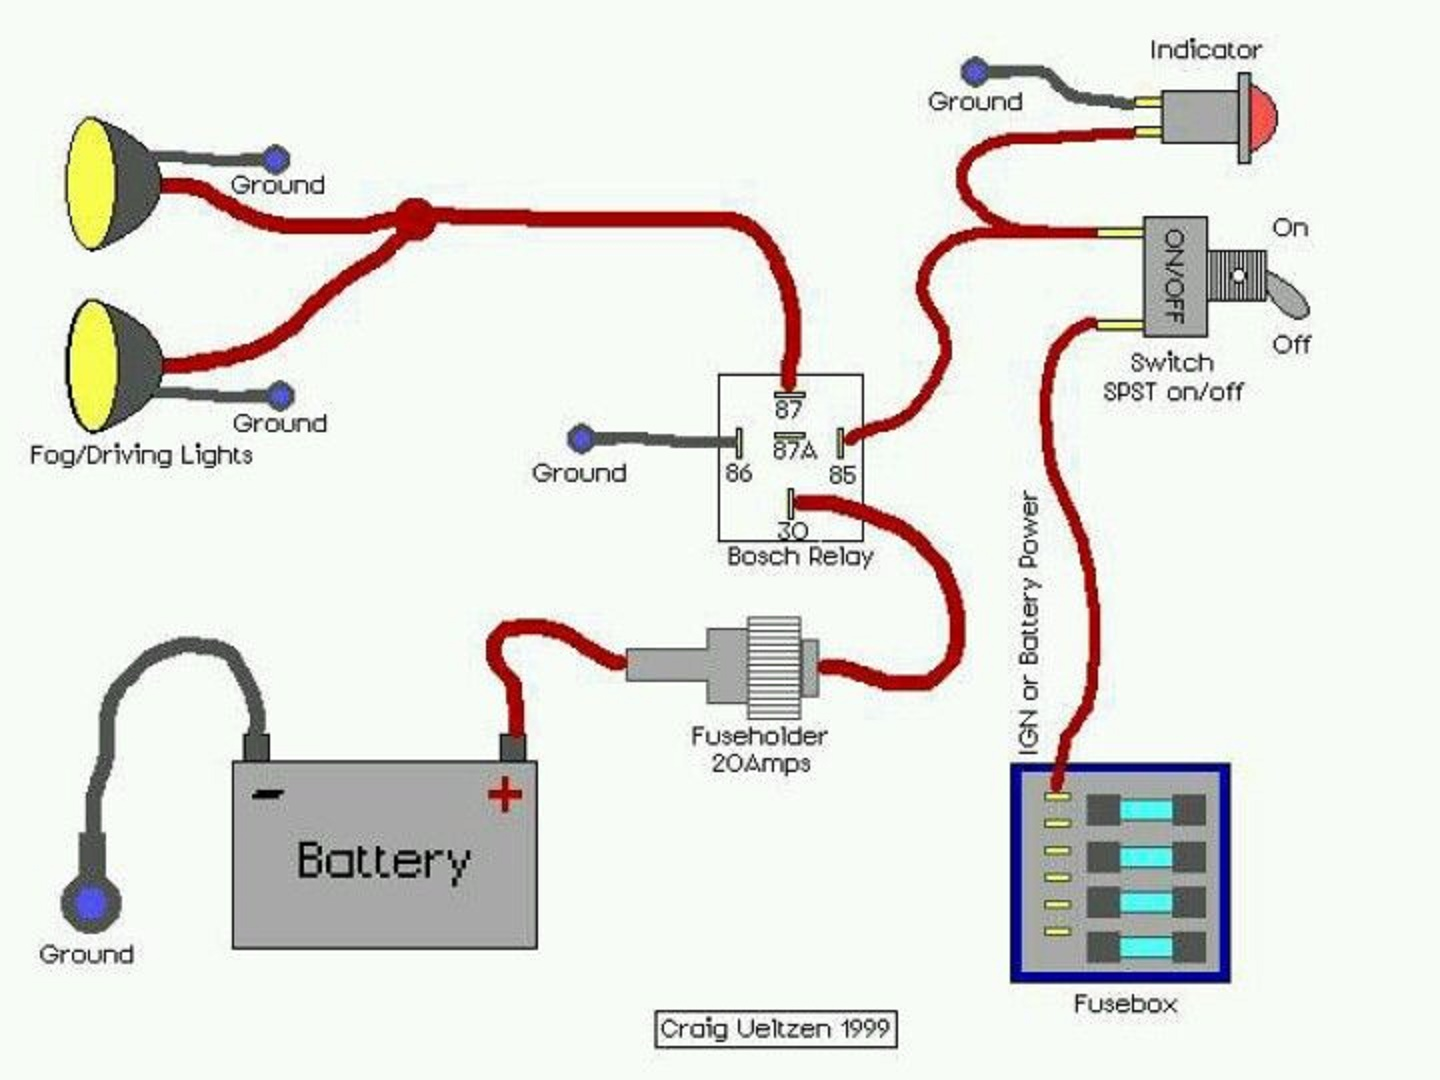 electrical and electronics engineering wiring diagram for off road off road light switch wiring off road lights wiring [ 1440 x 1080 Pixel ]